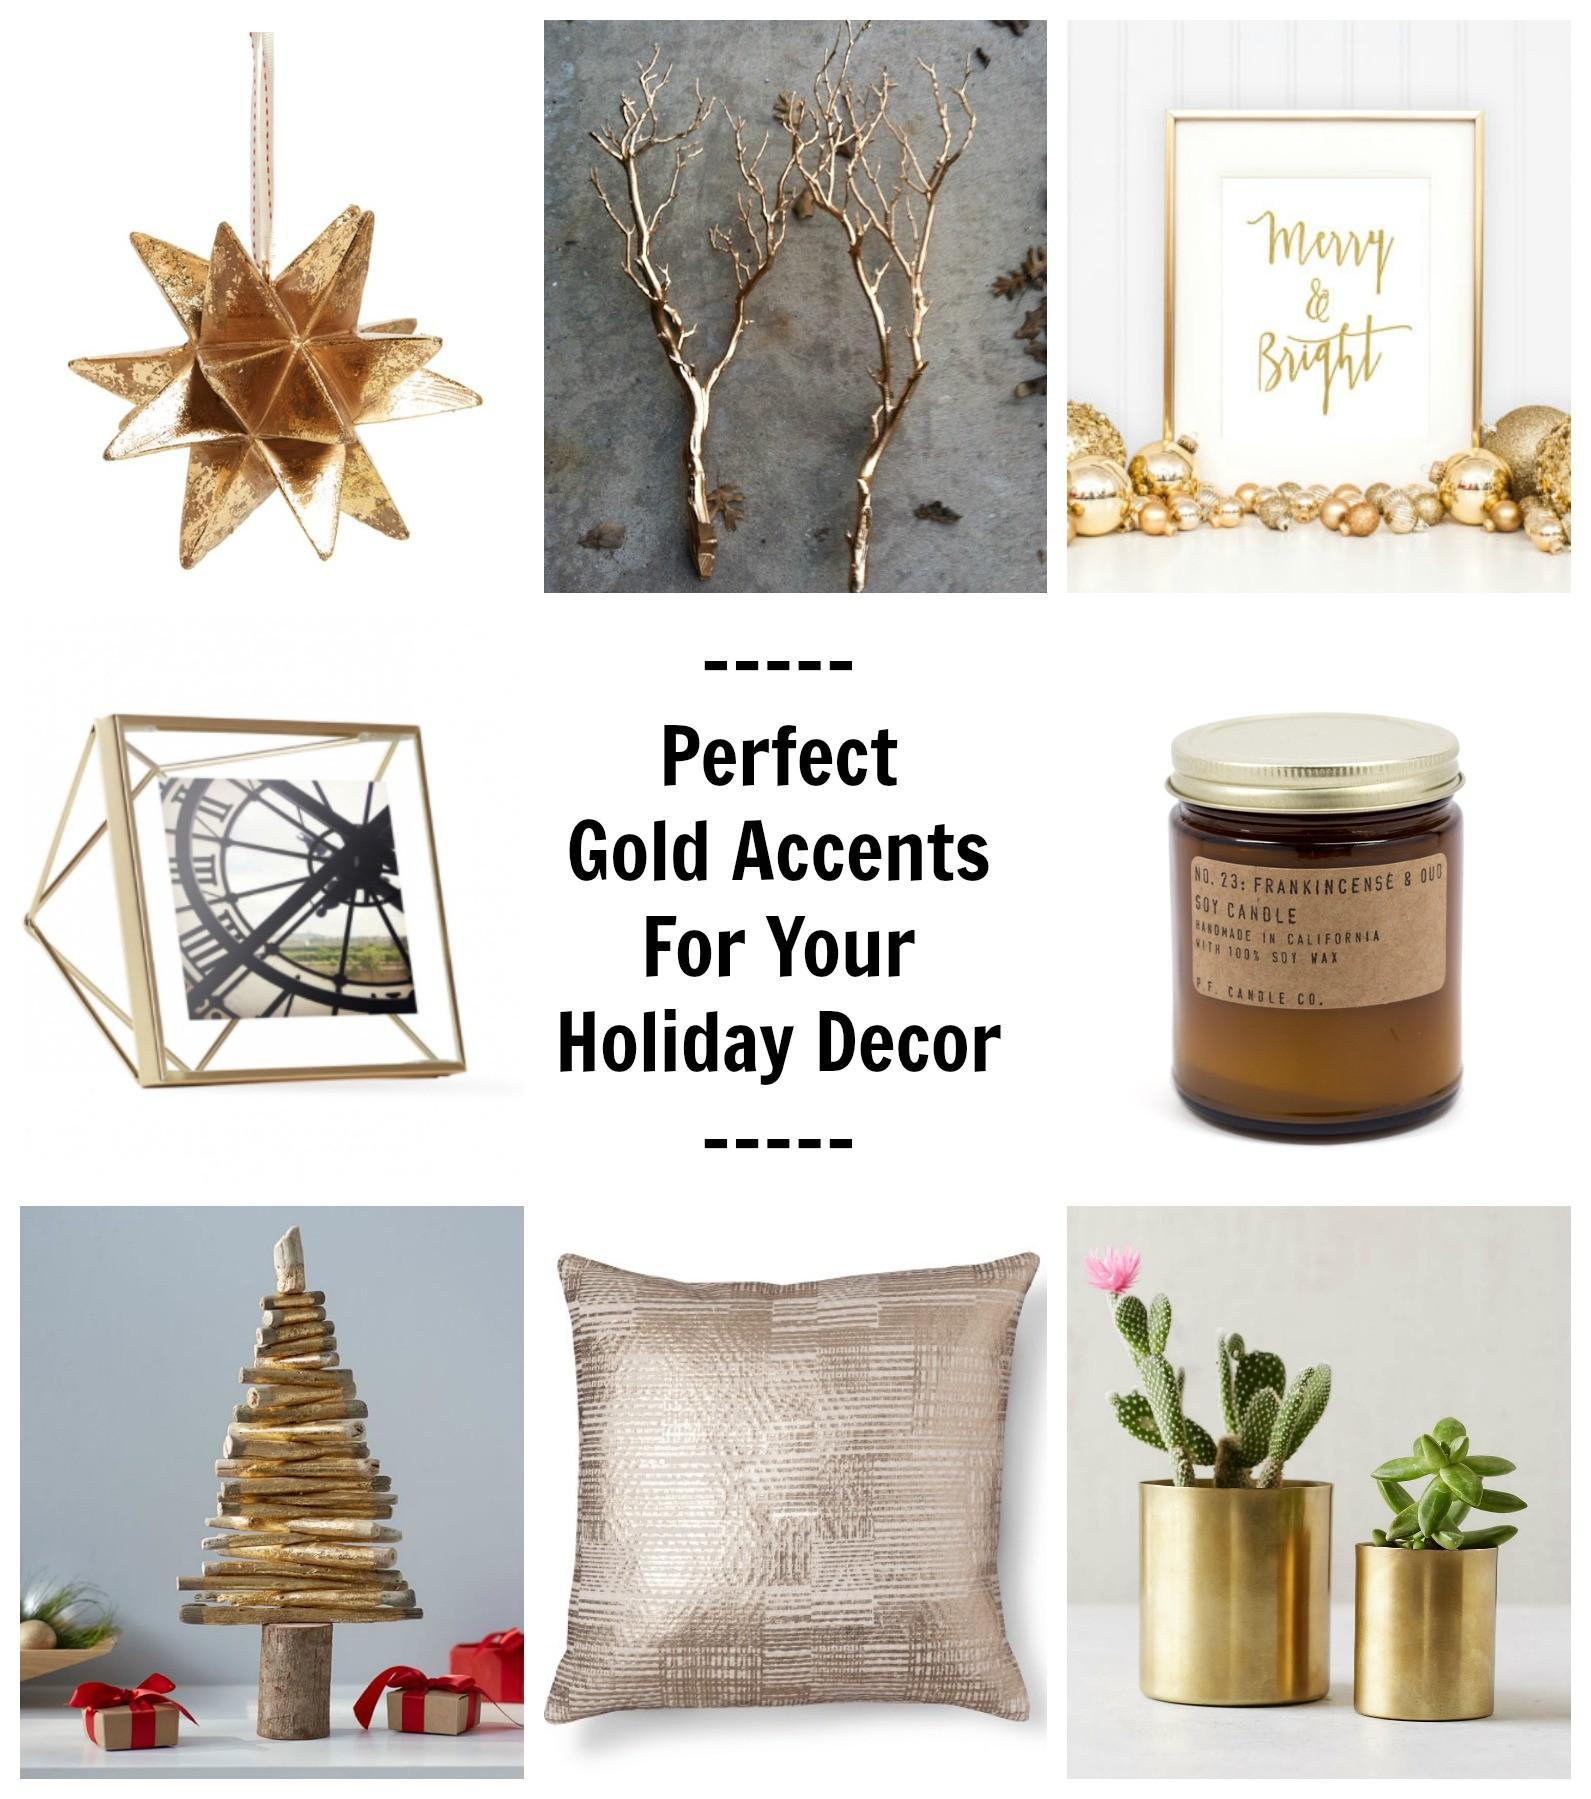 Perfect Gold Accents Your Holiday Decor